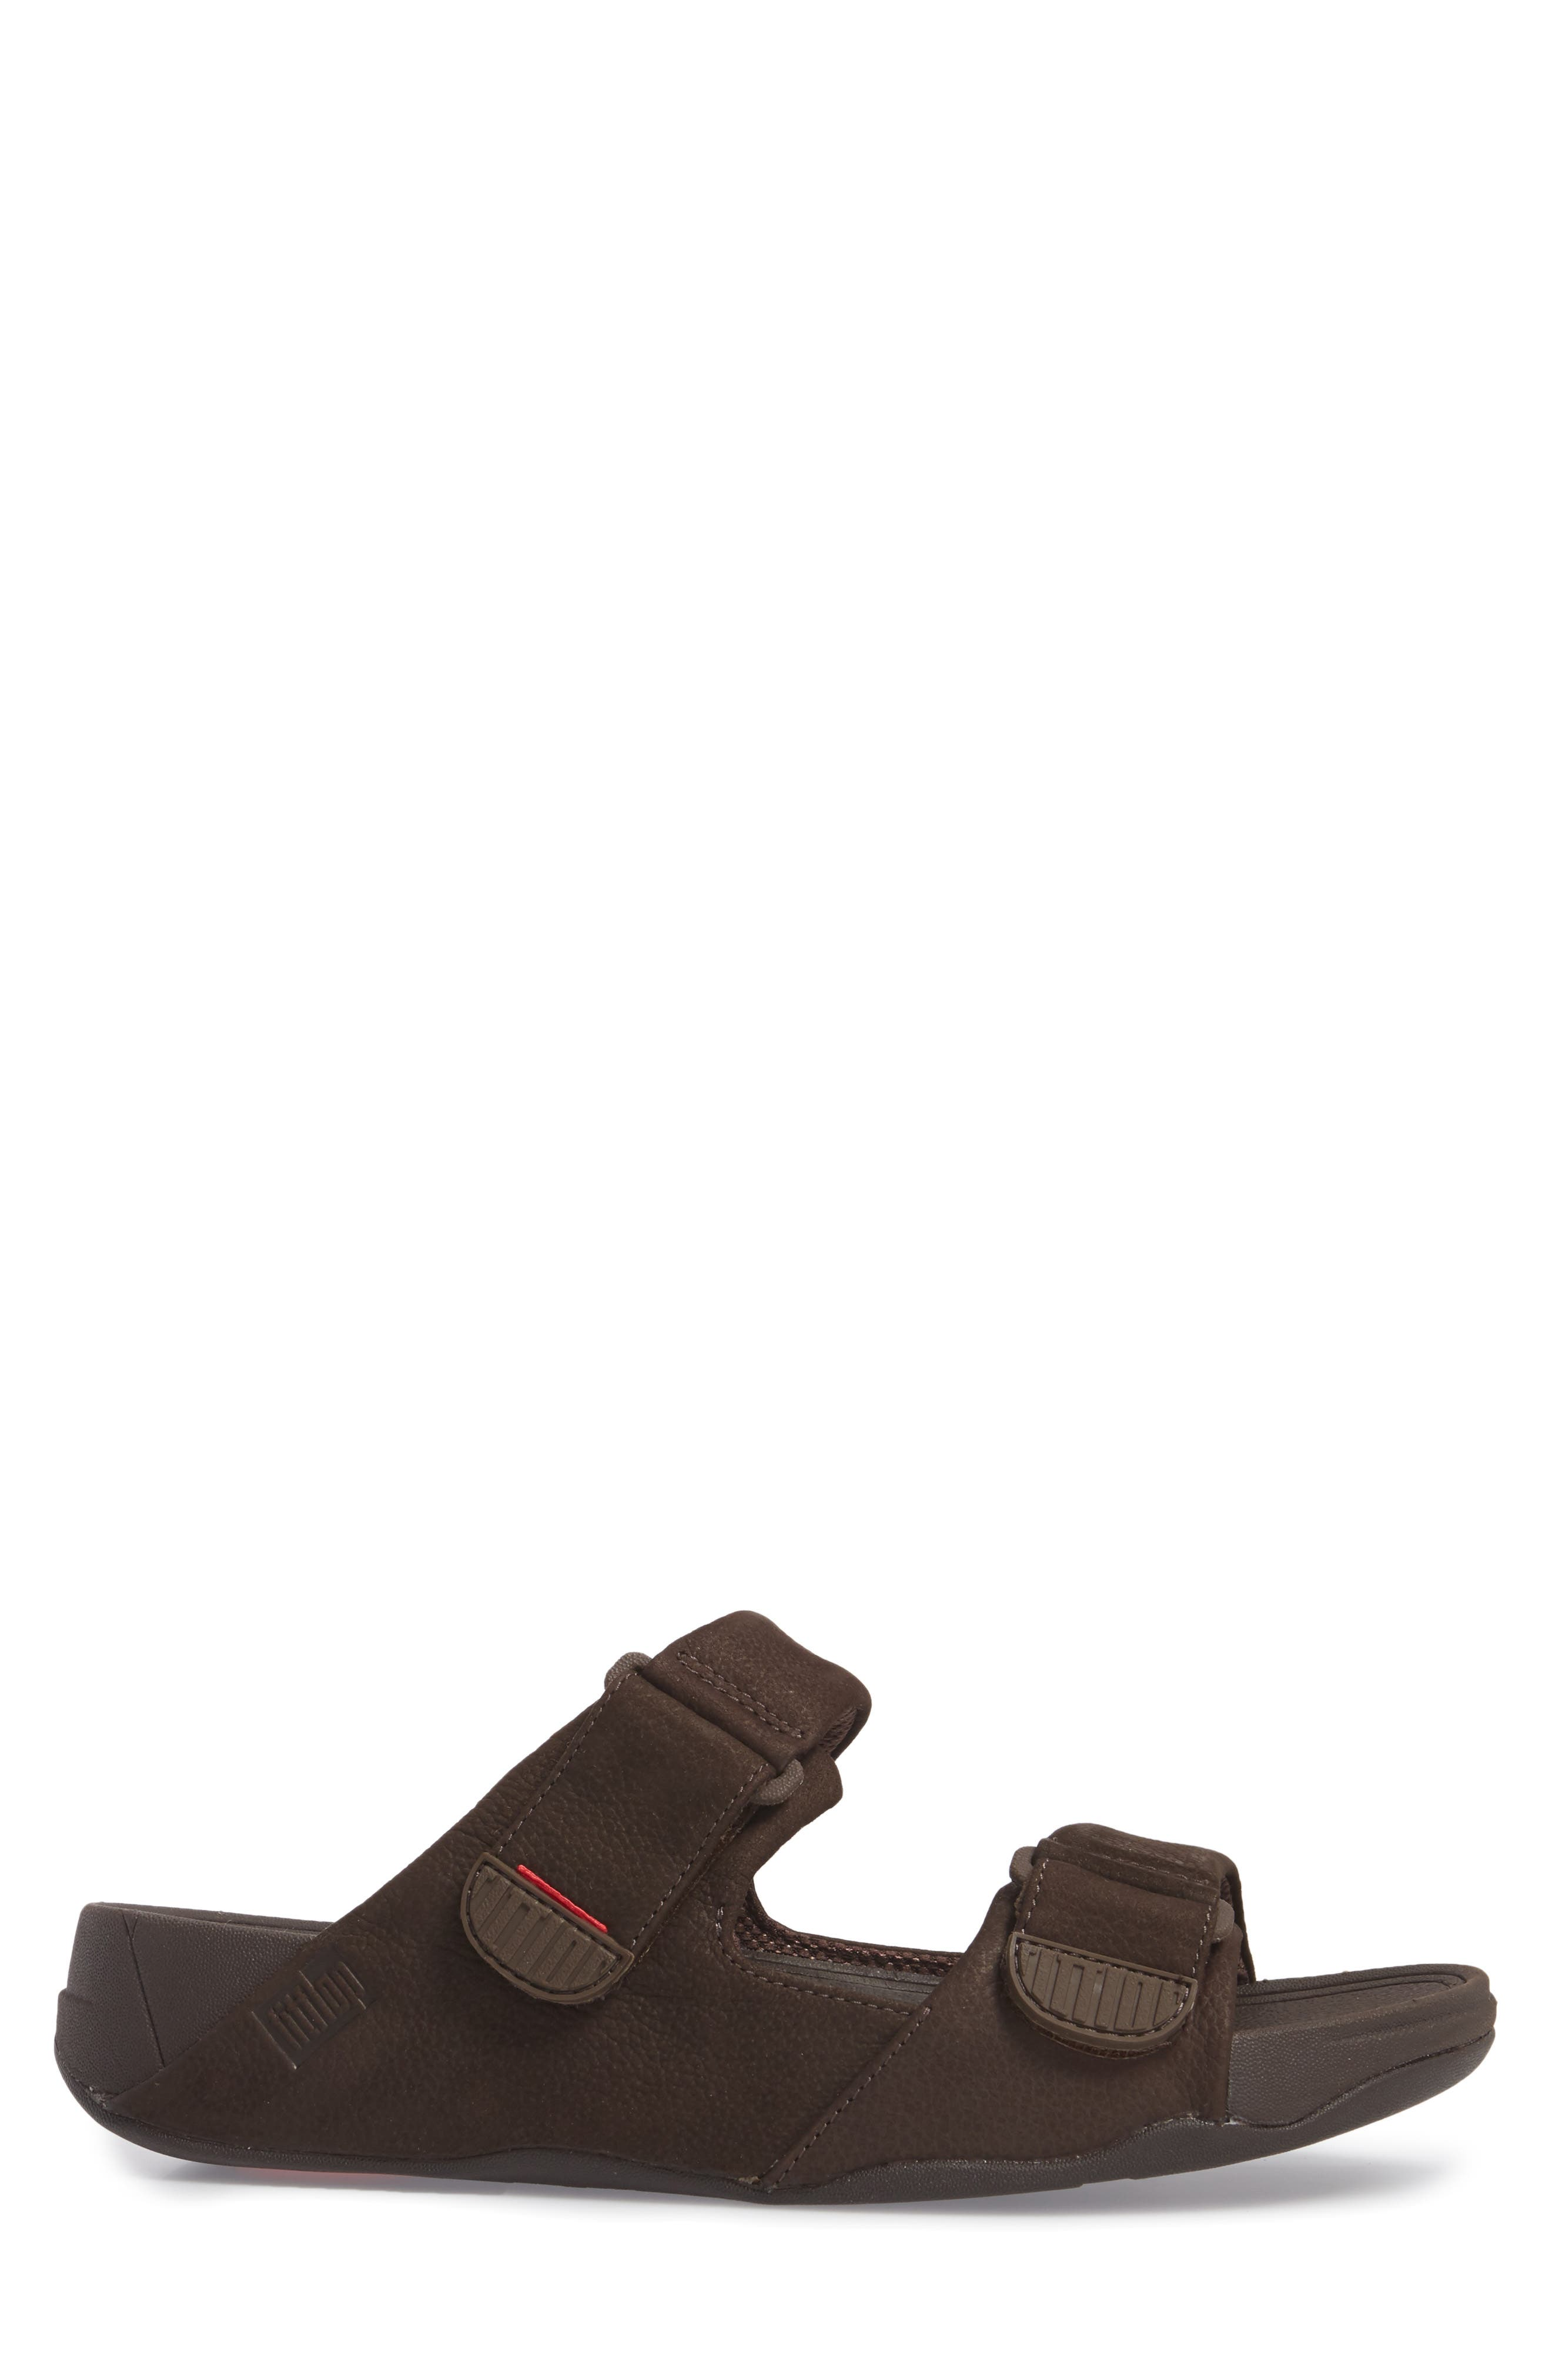 Gogh Sport Slide Sandal,                             Alternate thumbnail 3, color,                             Chocolate Brown